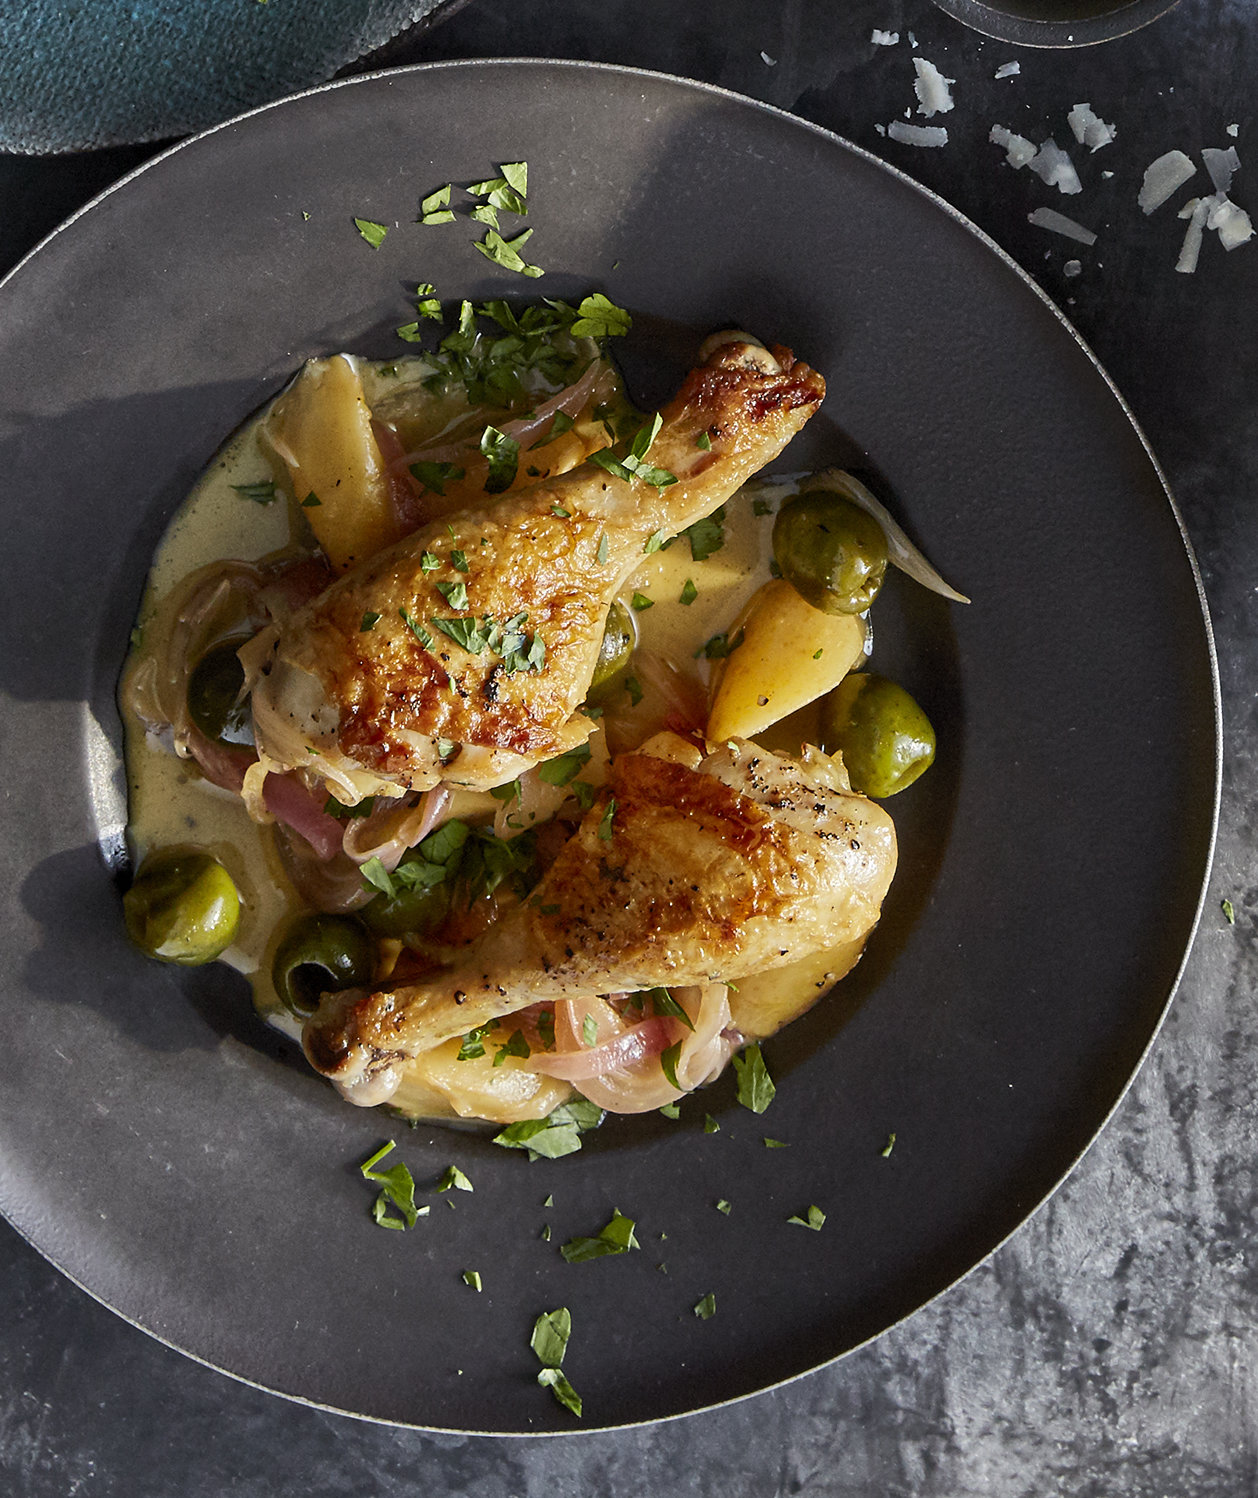 citrus-braised-drumsticks-parsnips